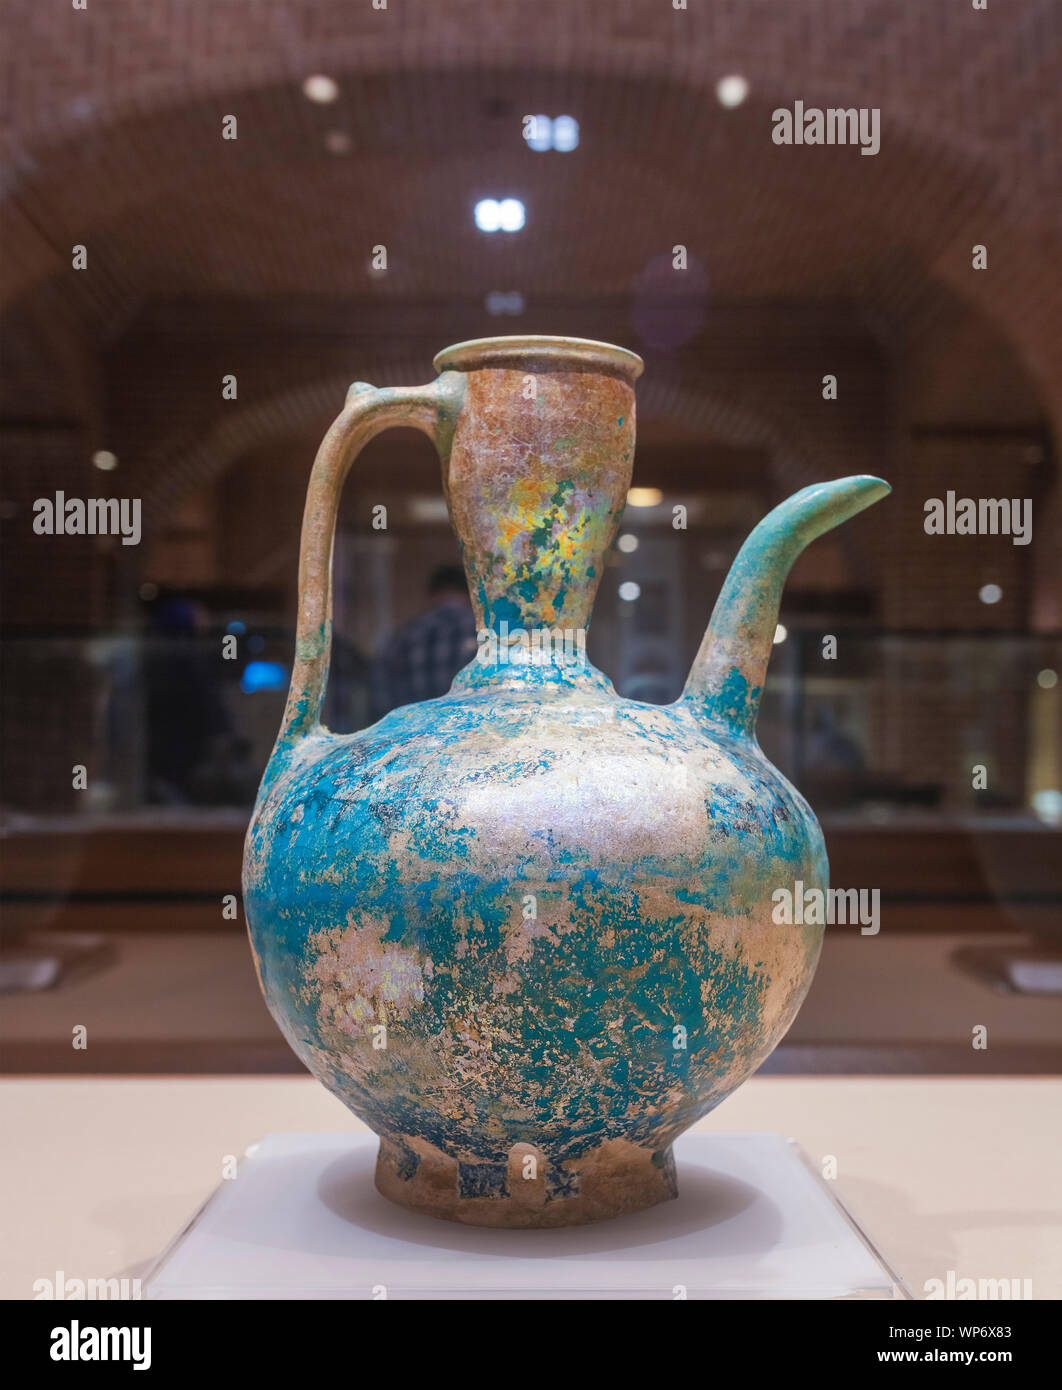 Glazed pottery pitcher, 9th century, Anthropology Museum, Ardabil, Ardabil Province, Iran Stock Photo